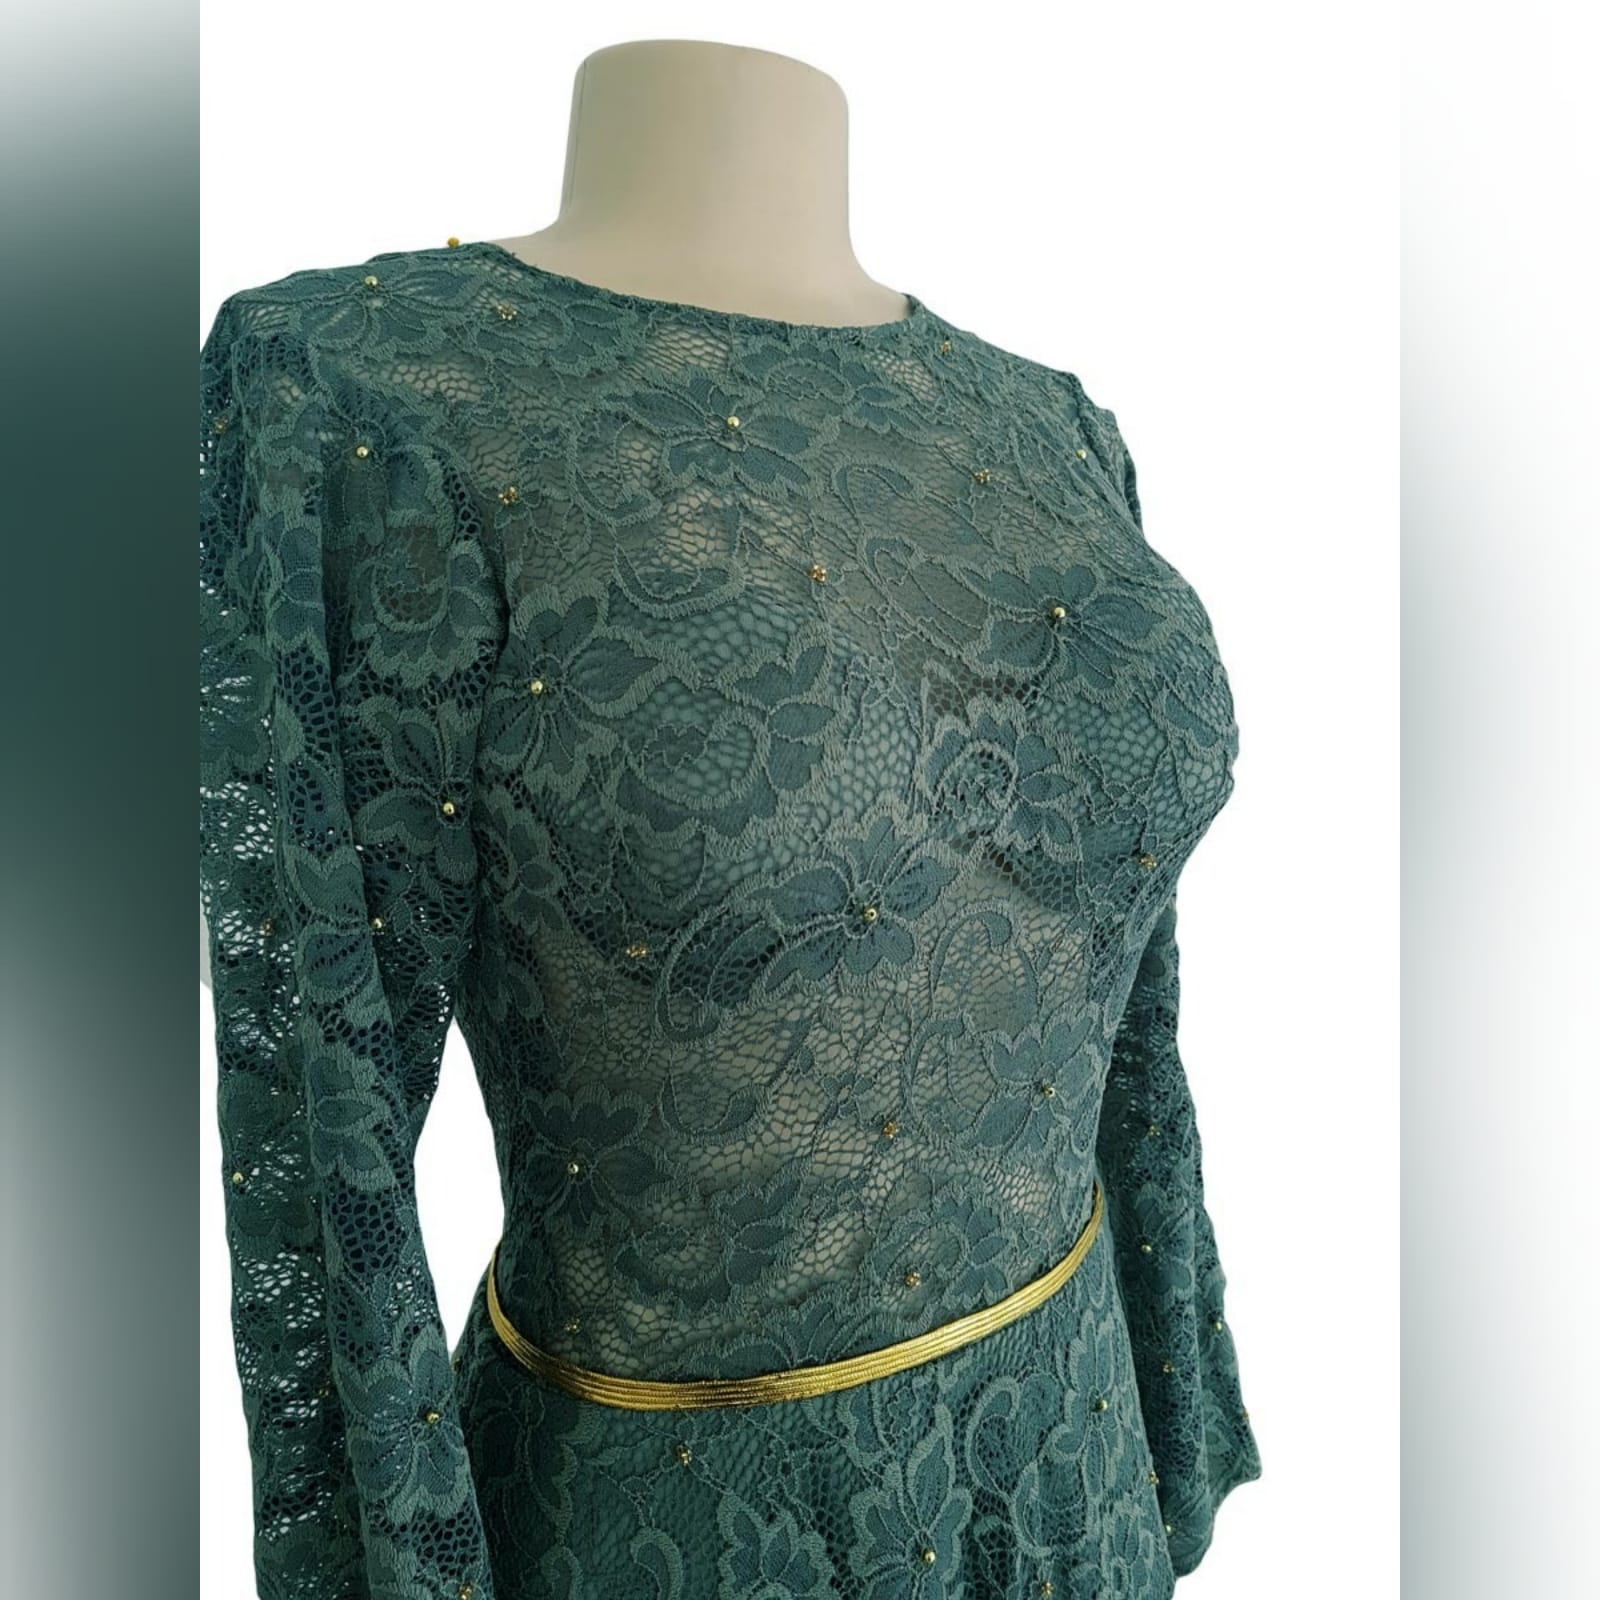 Tea length fully lace olive green evening dress 10 reneilwe looked charming with her tea length fully lace olive green evening dress. Bodice in sheer lace with long sleeves and open back for a feminine touch. With scattered gold beads and a thin removable gold belt to give it a chic look.